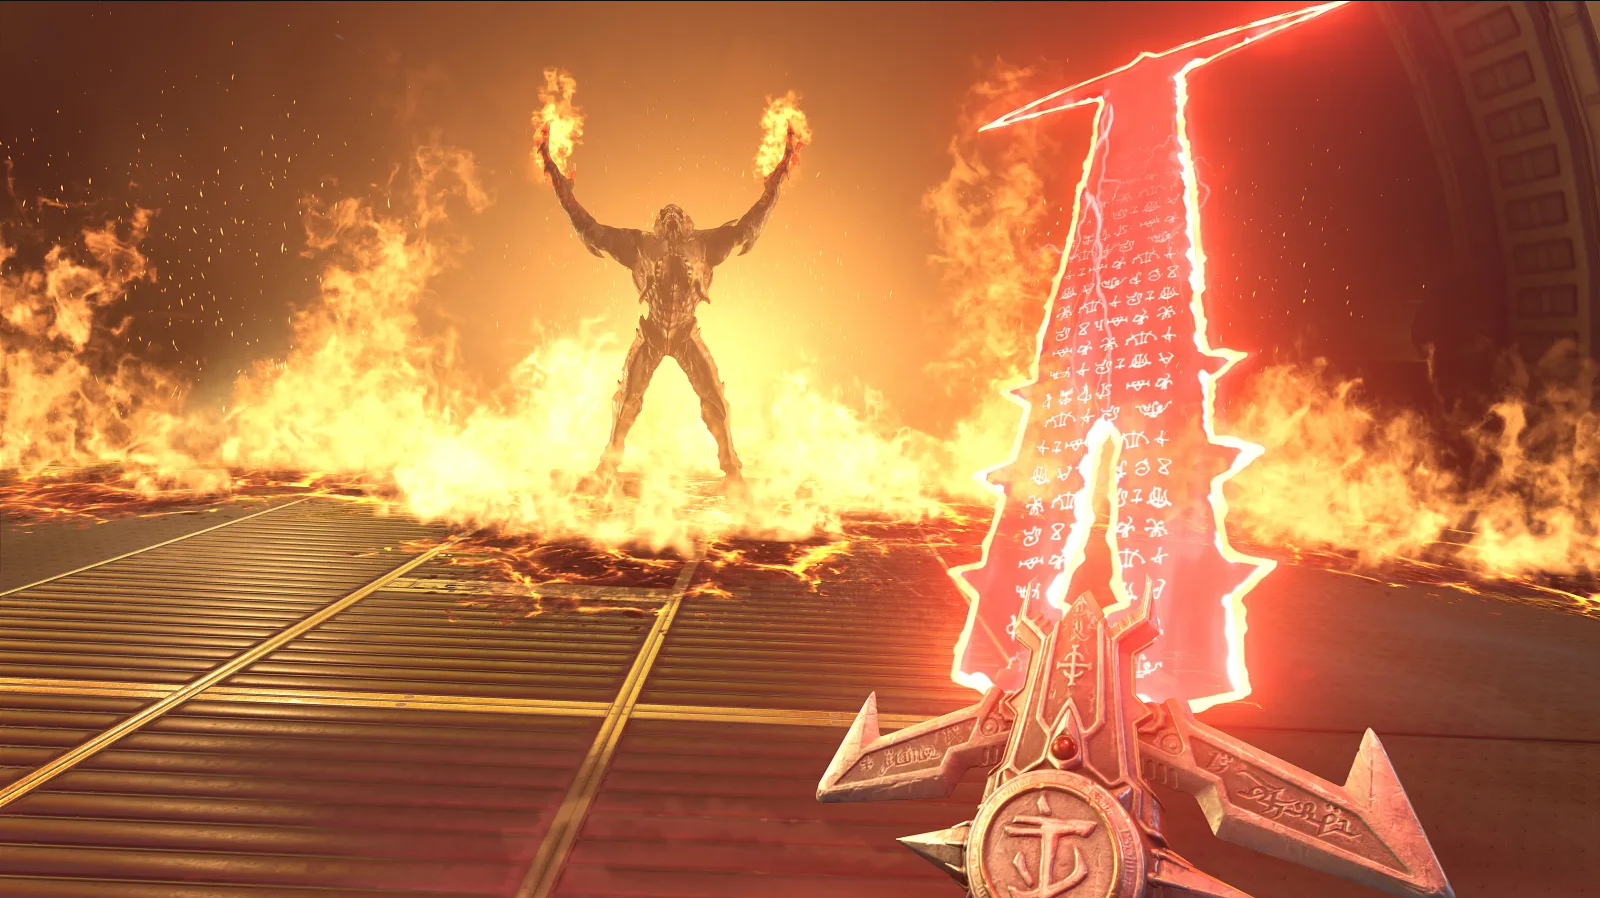 Player holding a magic sword and fighting a firey monster in DOOM Eternal